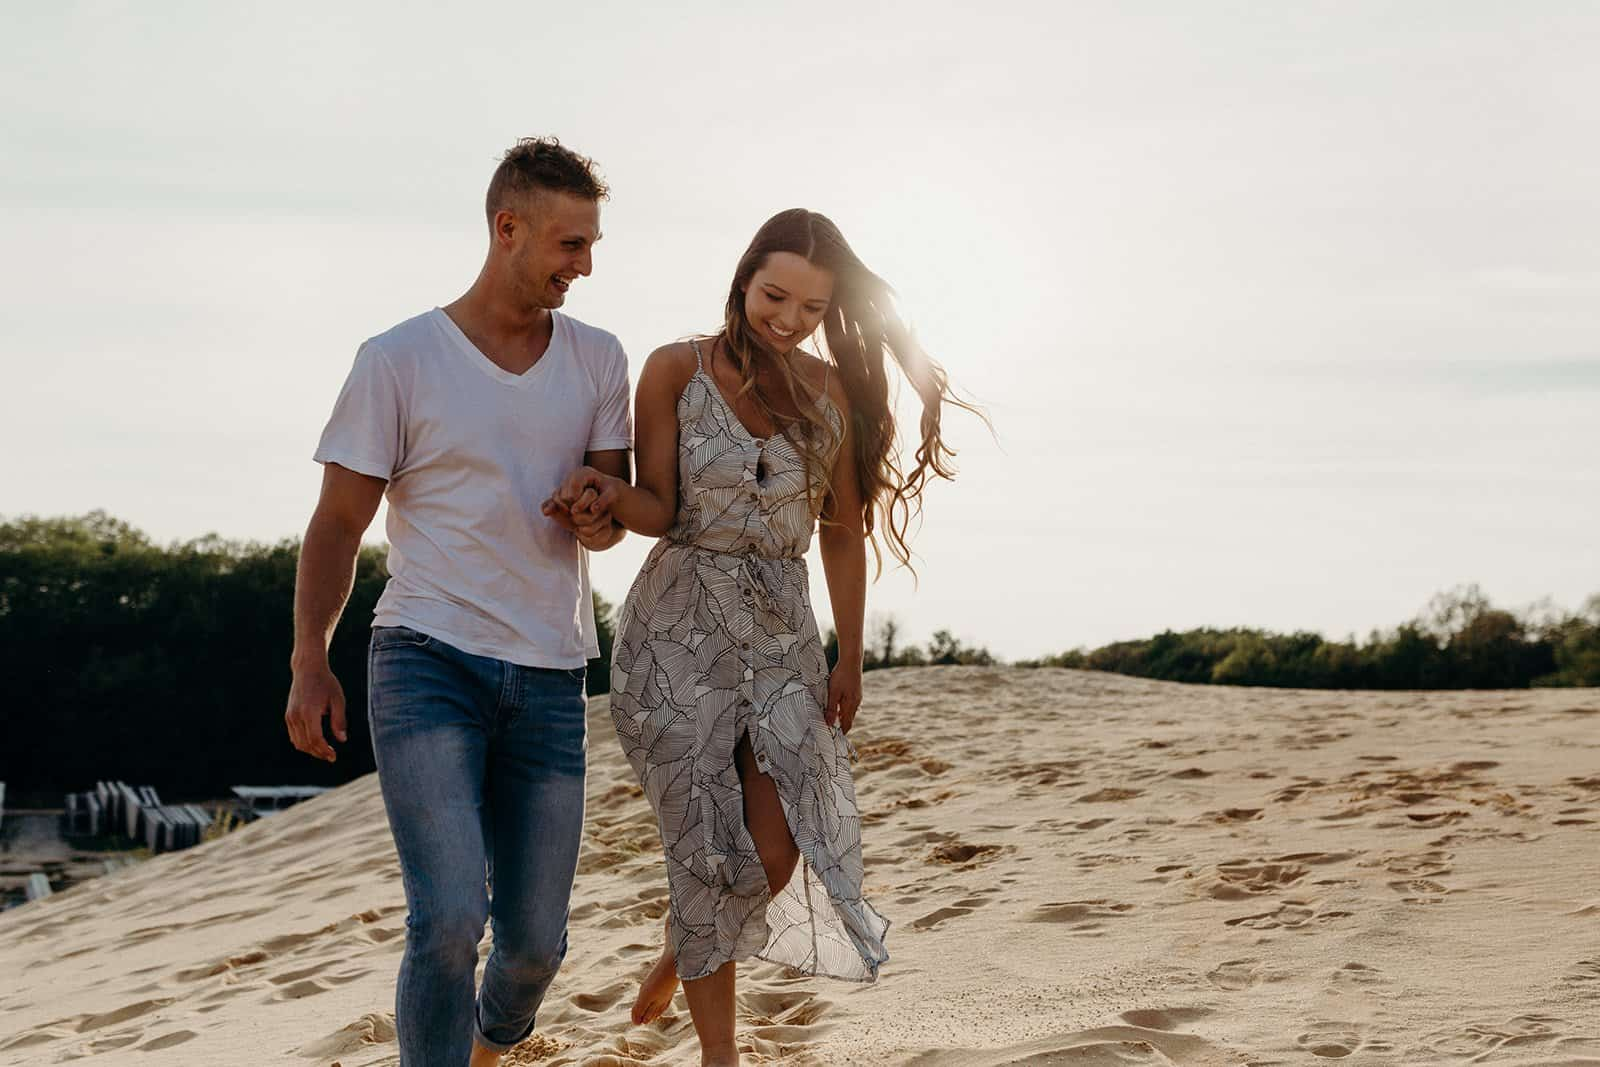 Ohio Sand Dunes Engagement | Addison + Morgan 153